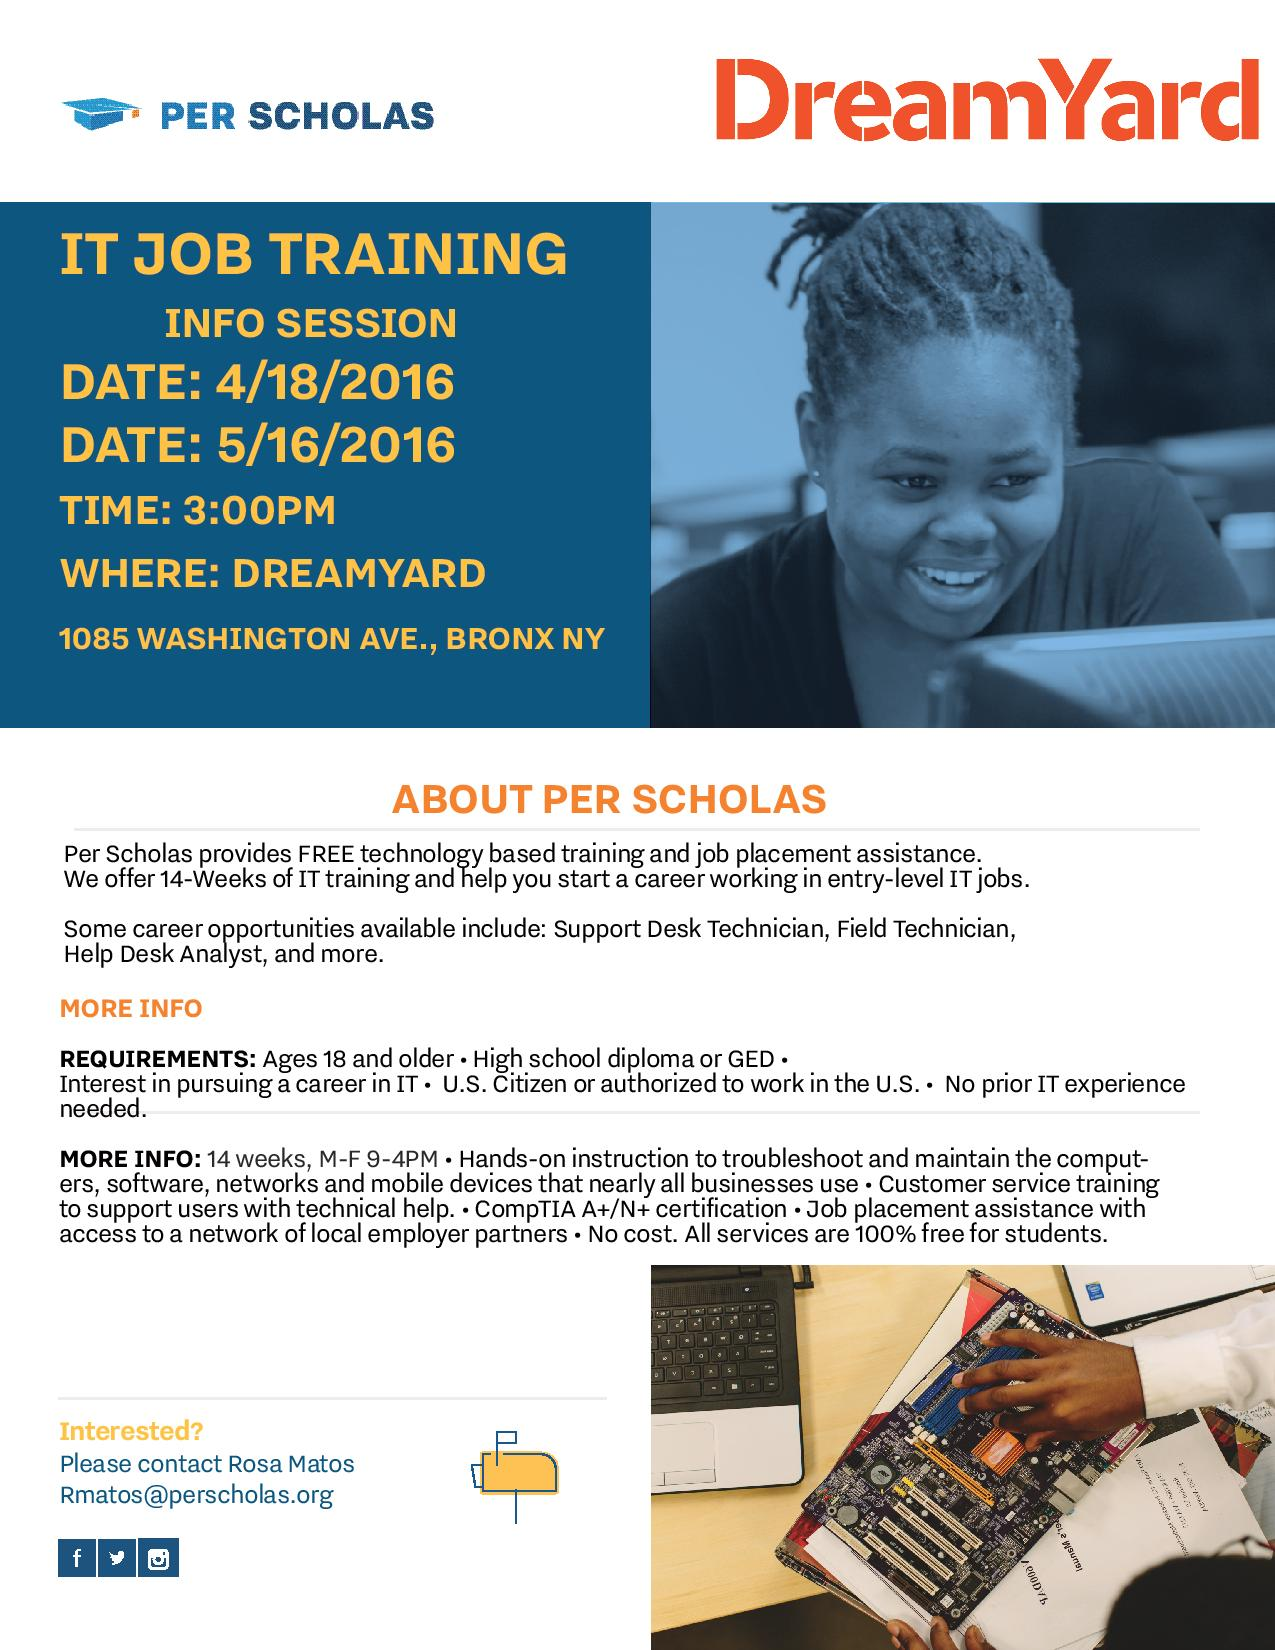 IT Job Training Info Session